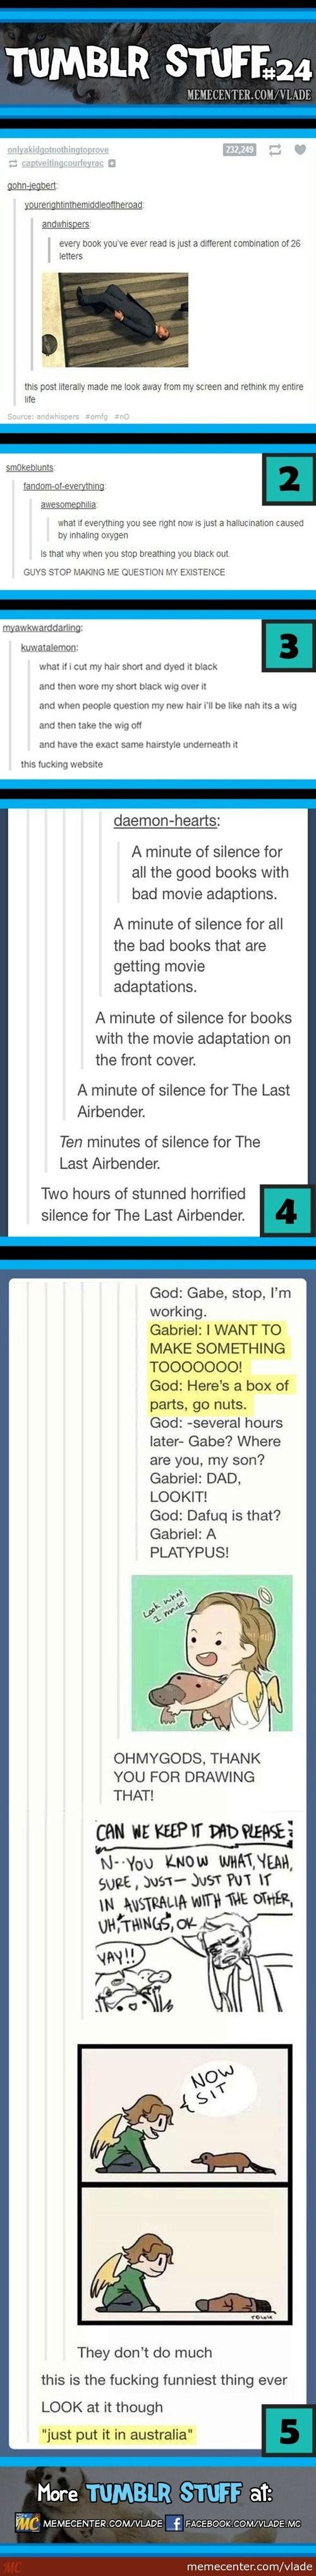 Haha all this. But seriously, I think I passed time limit of the 2 hours of shocked silence for the last air bender